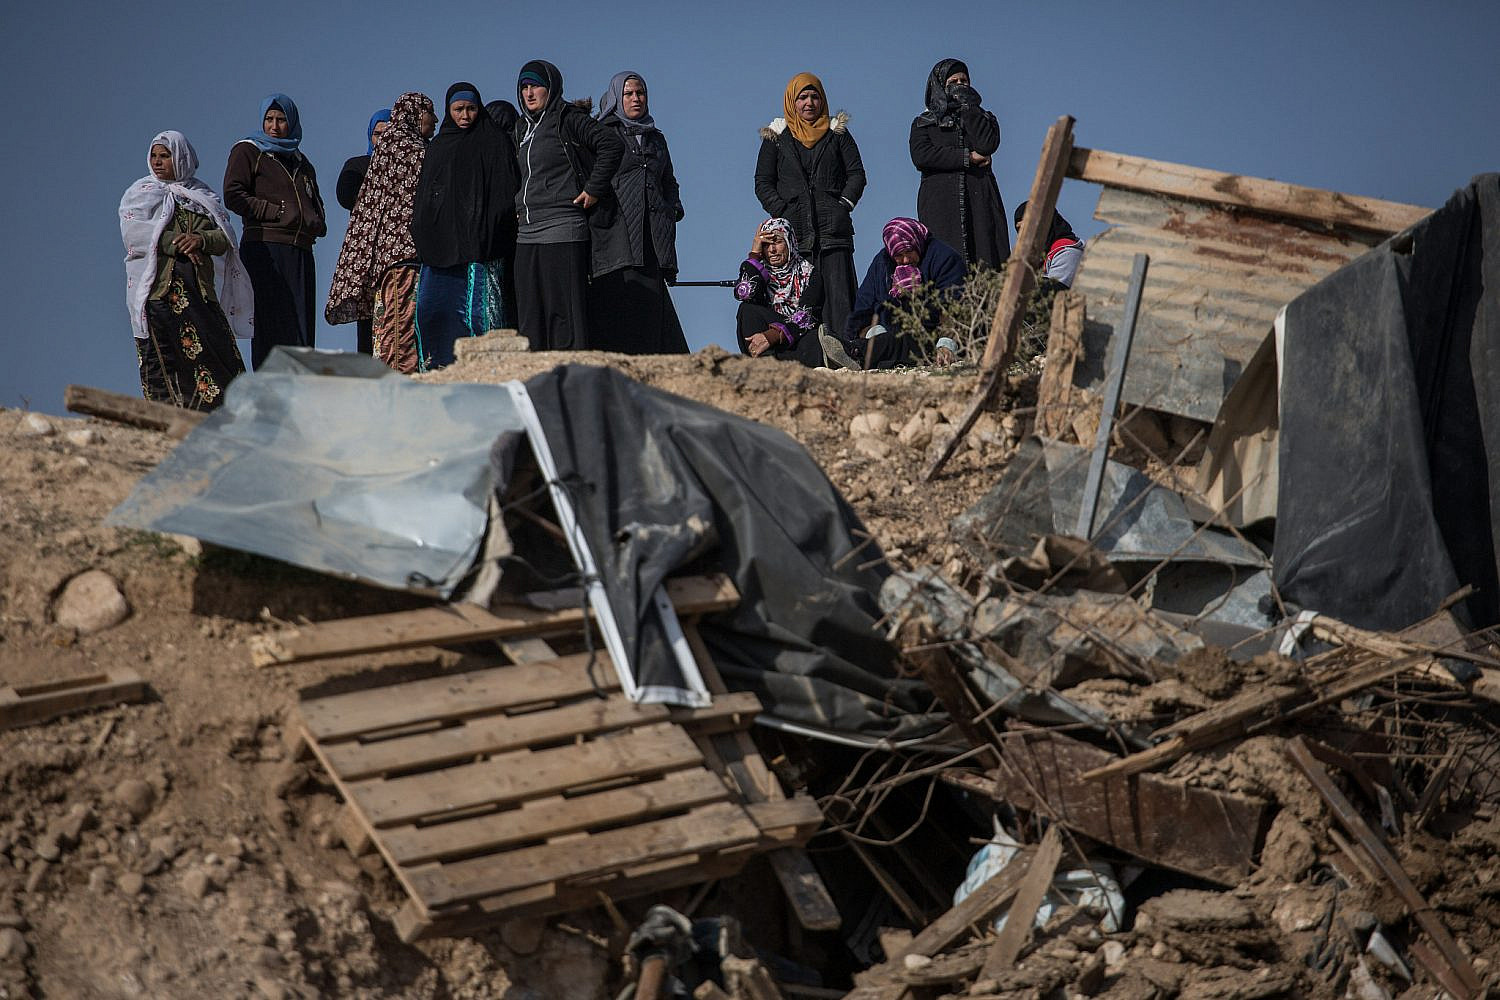 Bedouin women react after seeing their demolished home in the village of Umm al-Hiran in the Negev, southern Israel, Jan. 18, 2017. (Hadas Parush/Flash90)